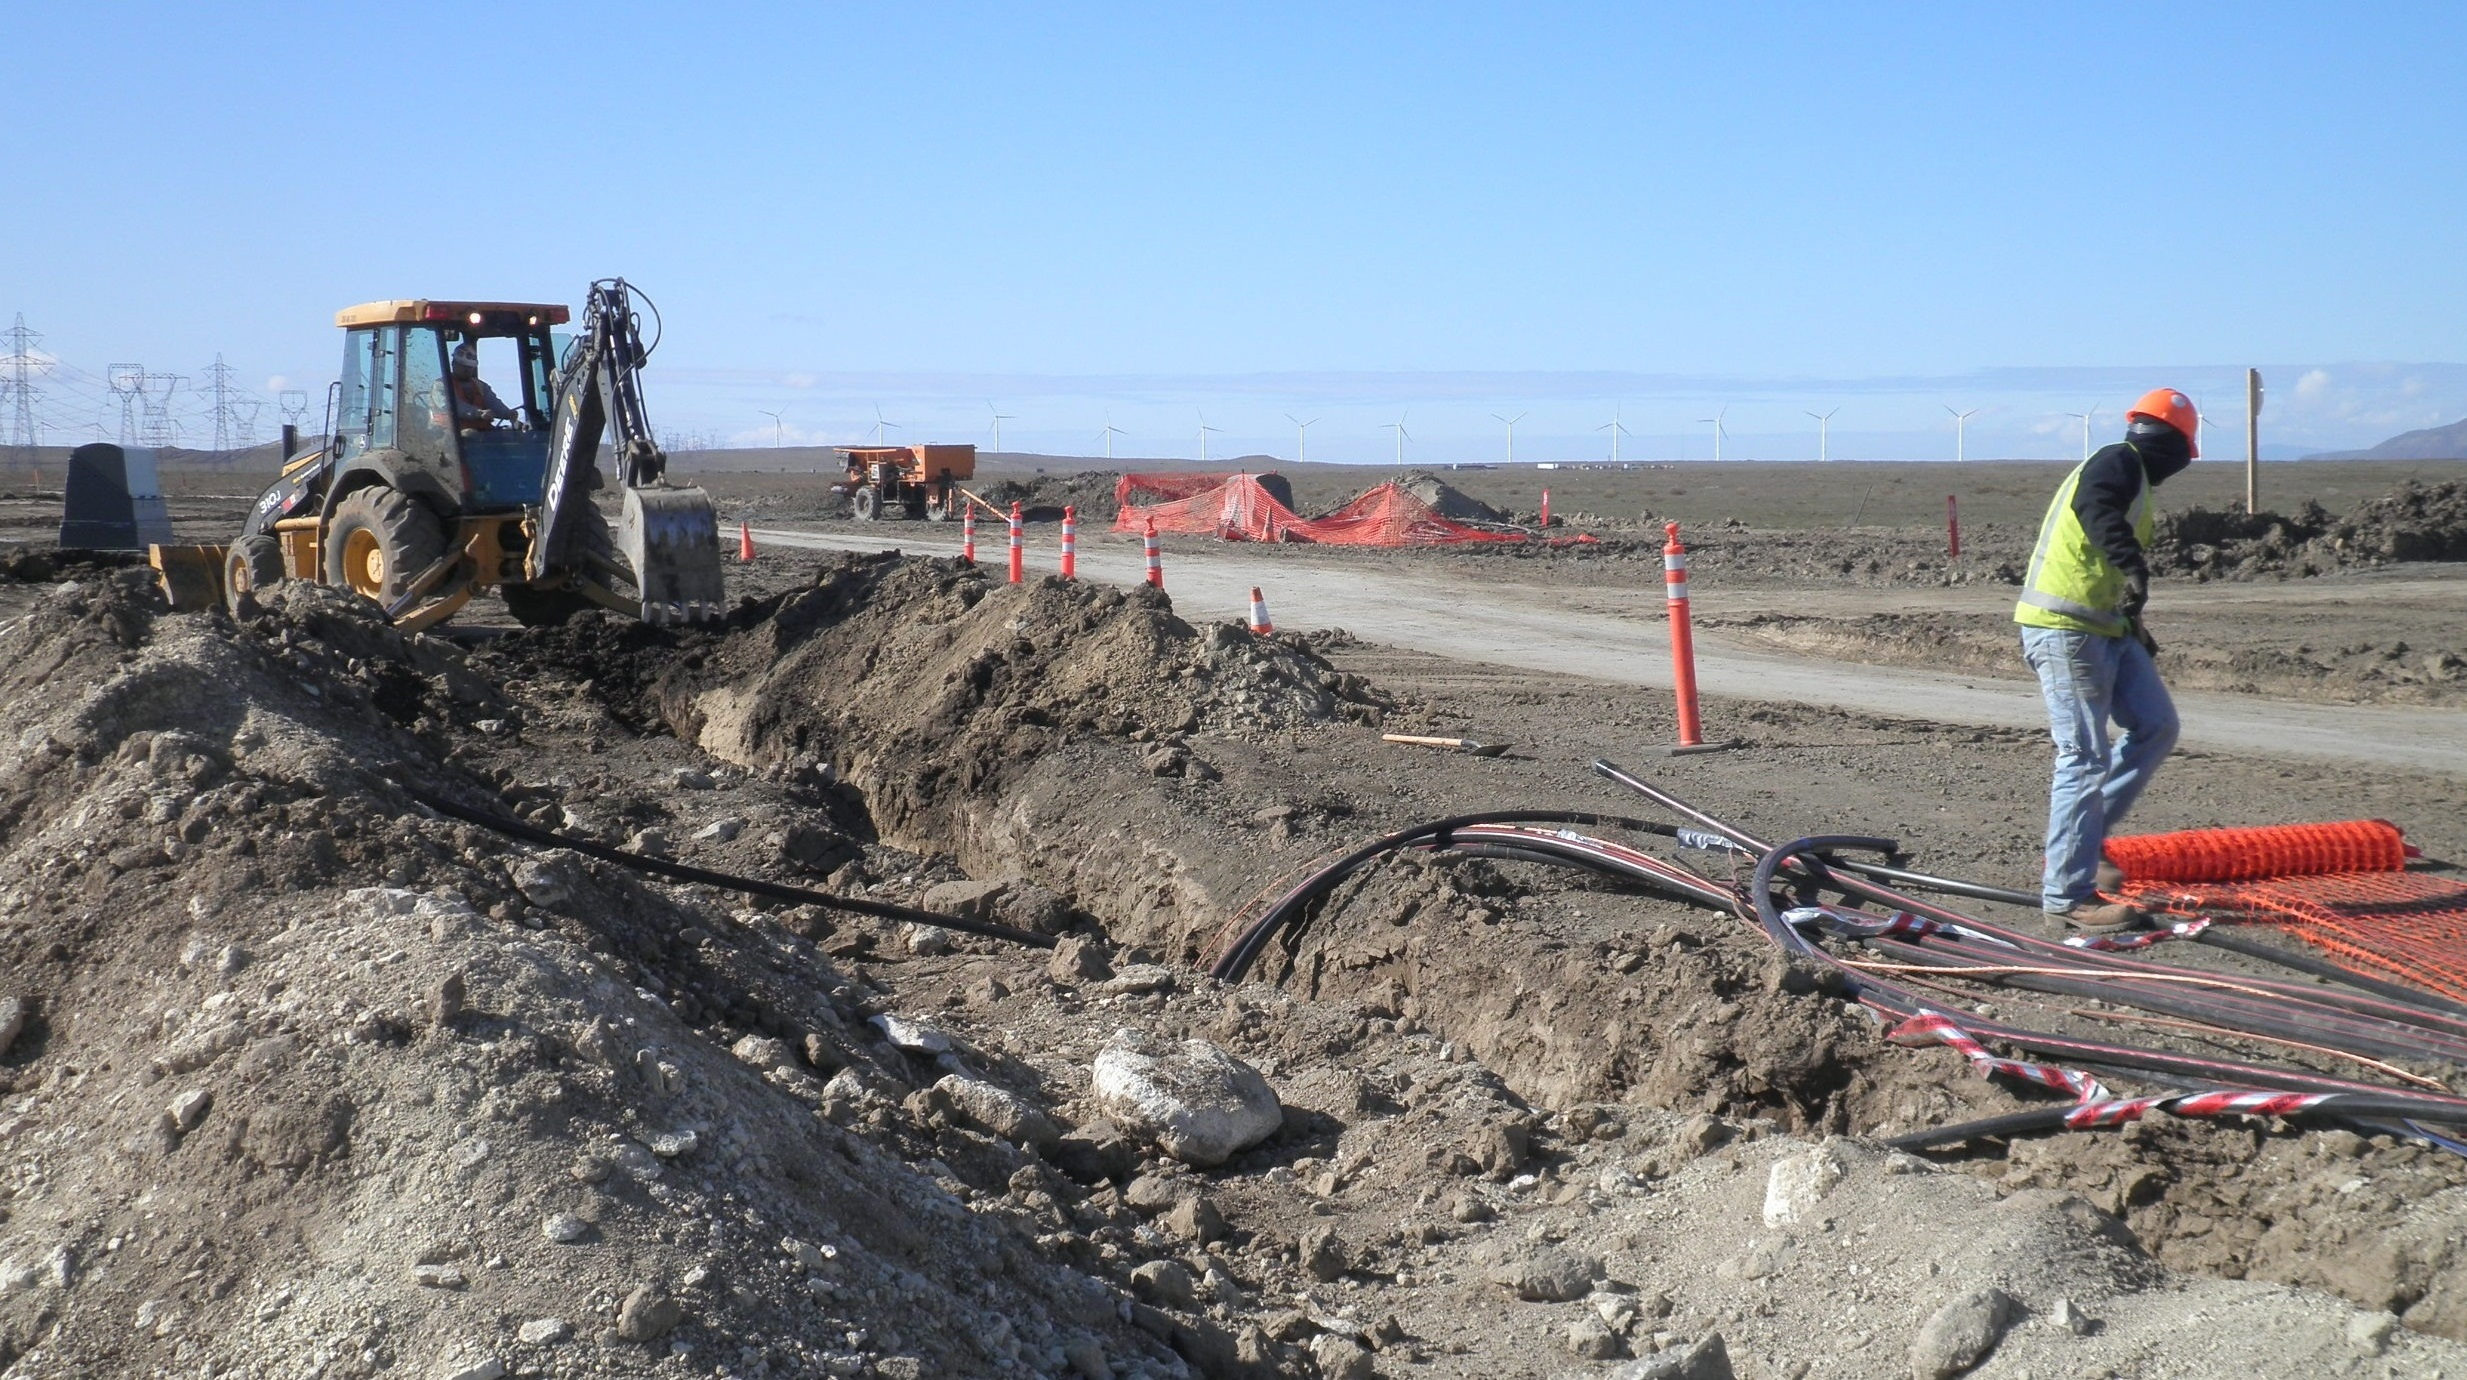 The Shepherds Flat wind farm is expected to be fully operational in 2012 and supply 235,000 average U.S. homes.